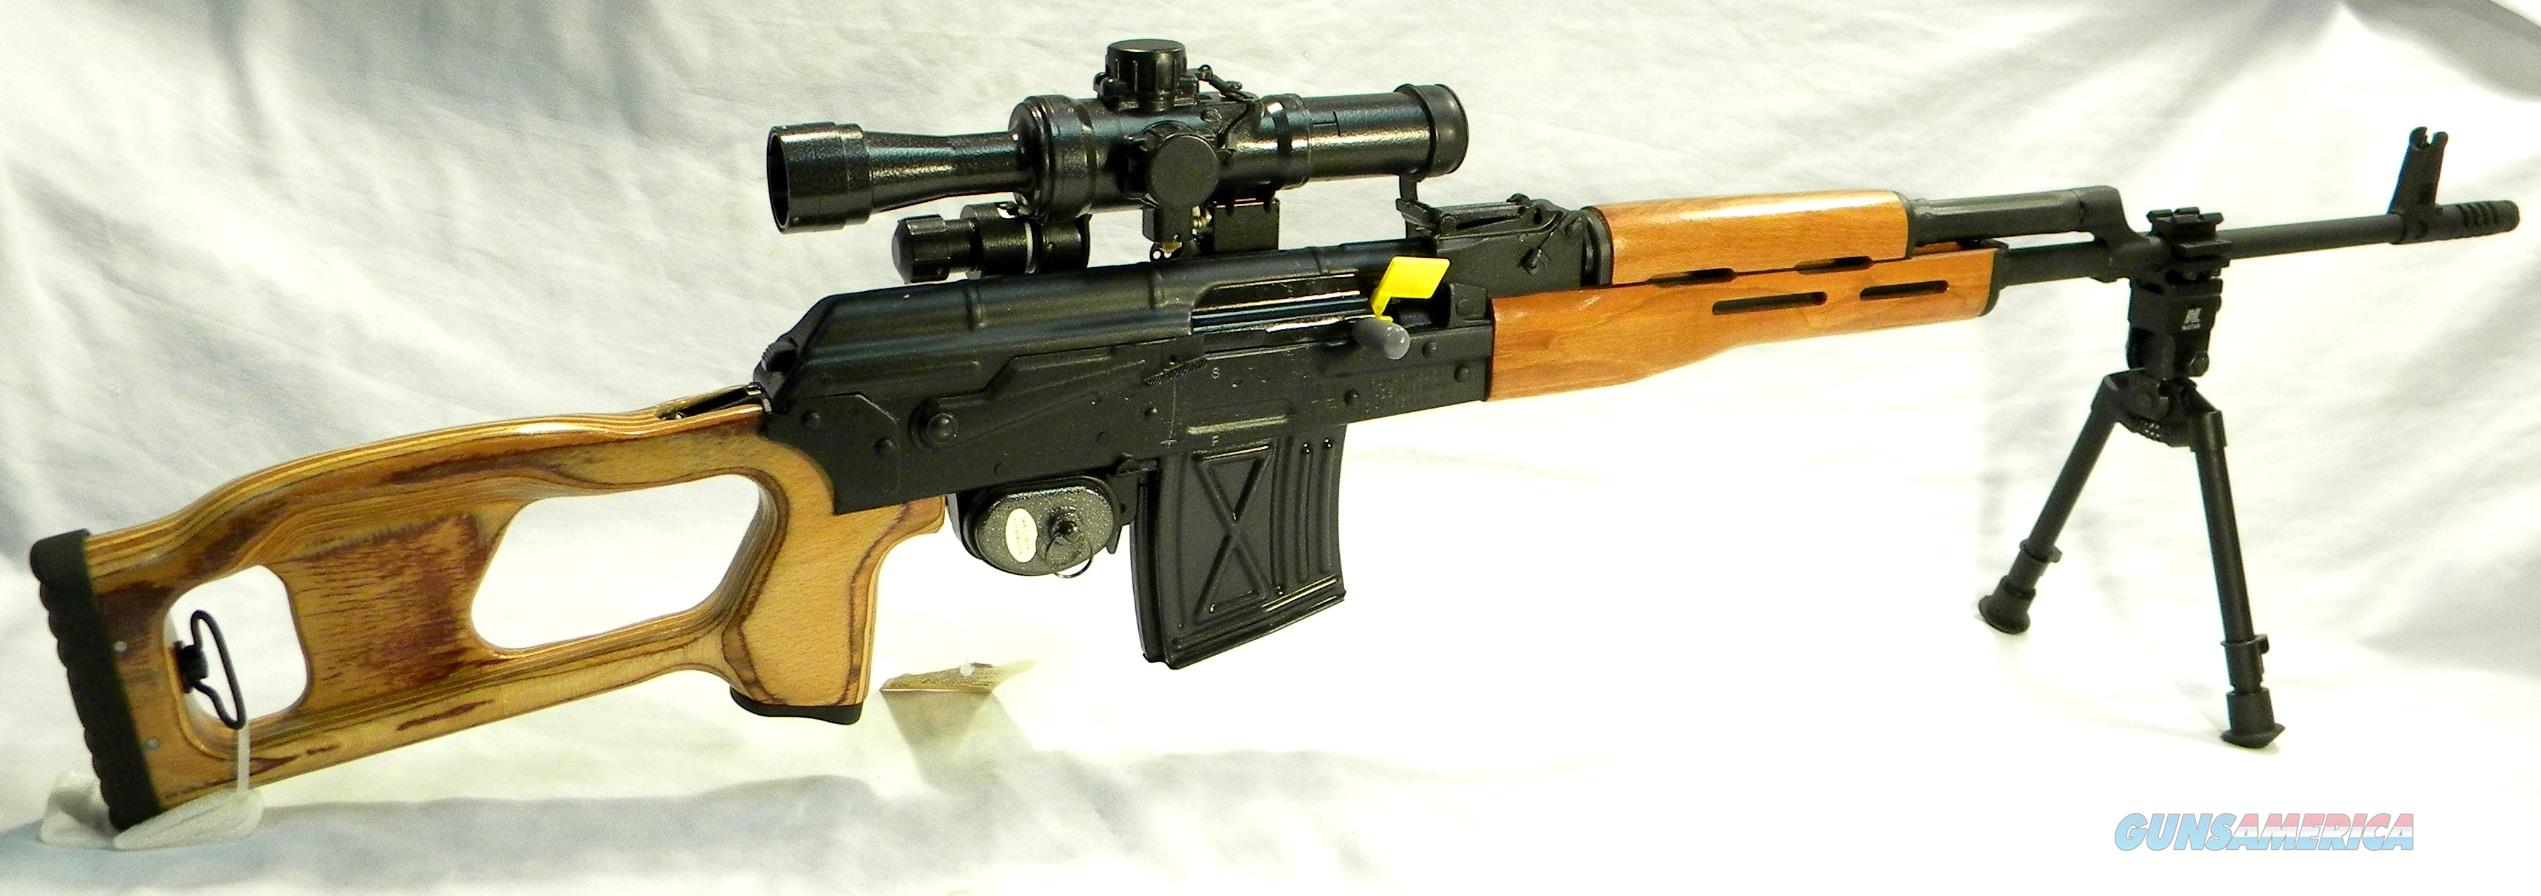 PSL-54 Sniper Rifle, Romanian Made, New In Box, With Correct Russian 4x24 Scope  Guns > Rifles > Tactical/Sniper Rifles